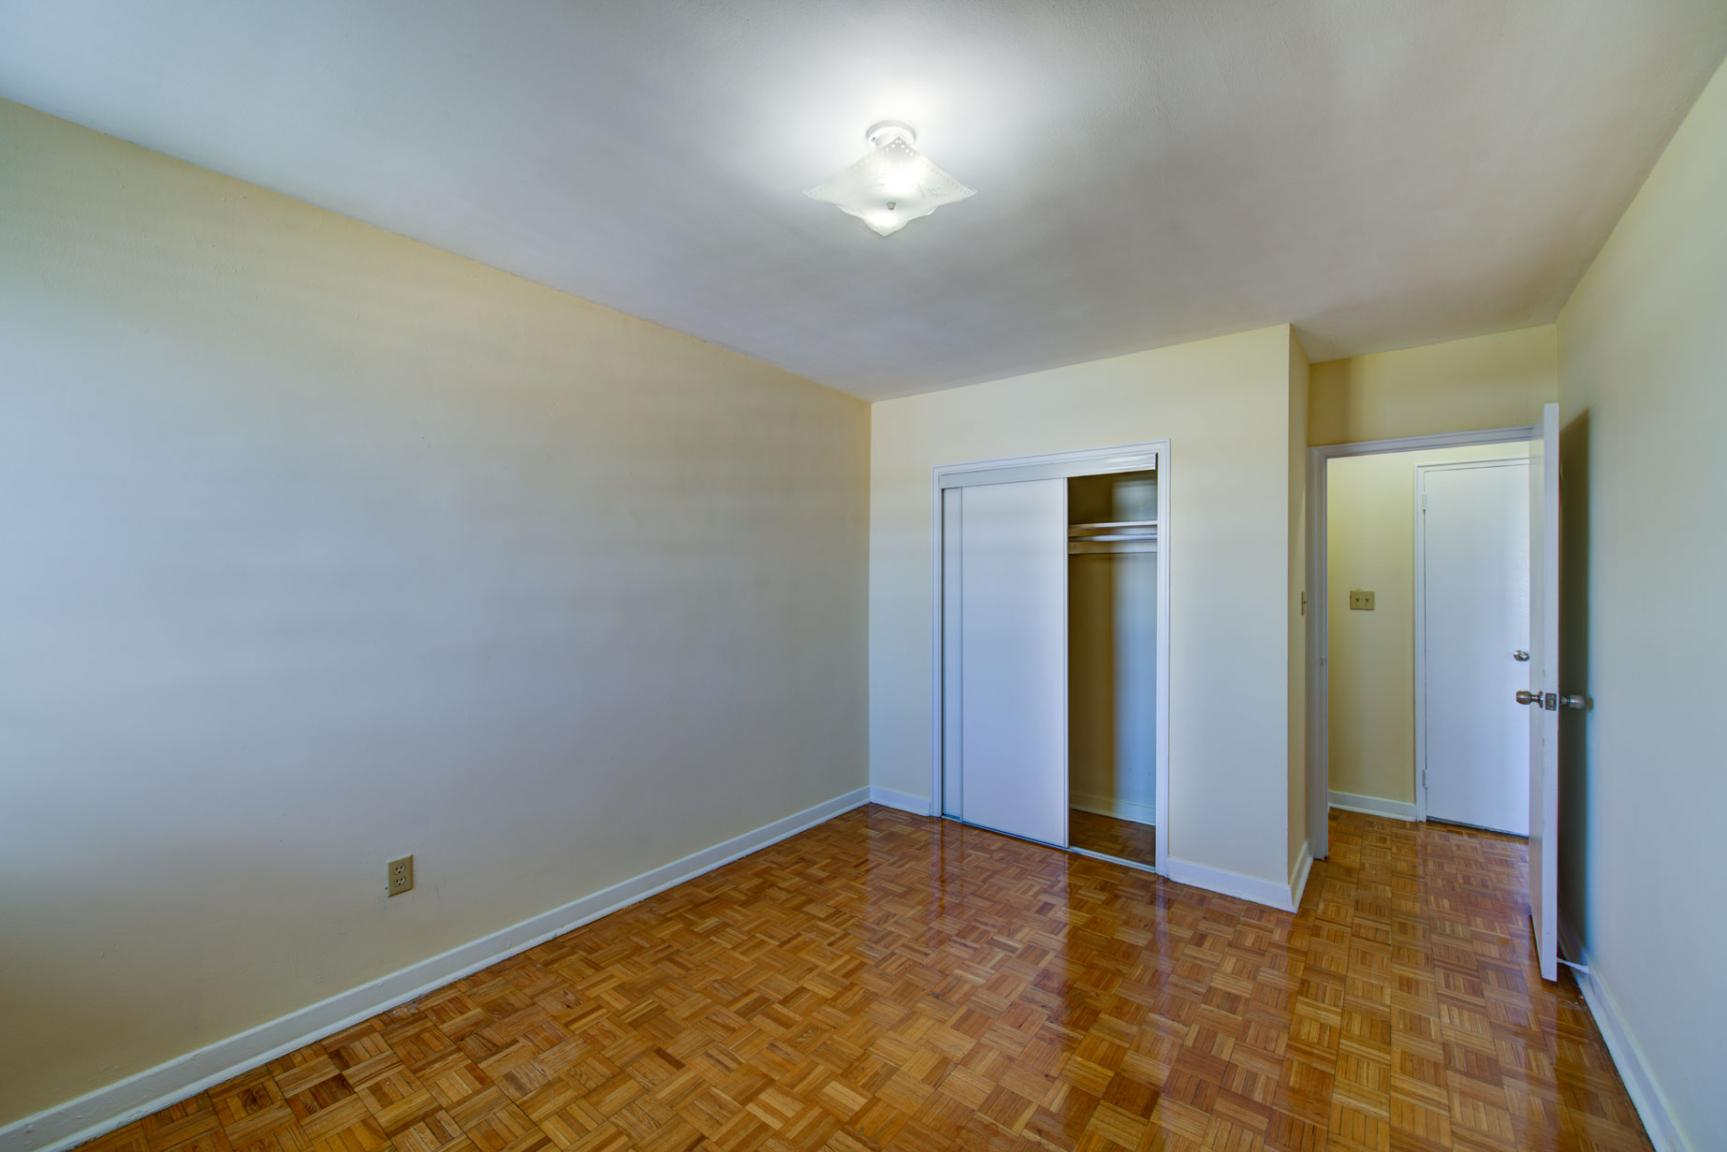 2 bedroom Apartments for rent in Toronto at Lake Promenade Community - Photo 21 - RentersPages – L138882